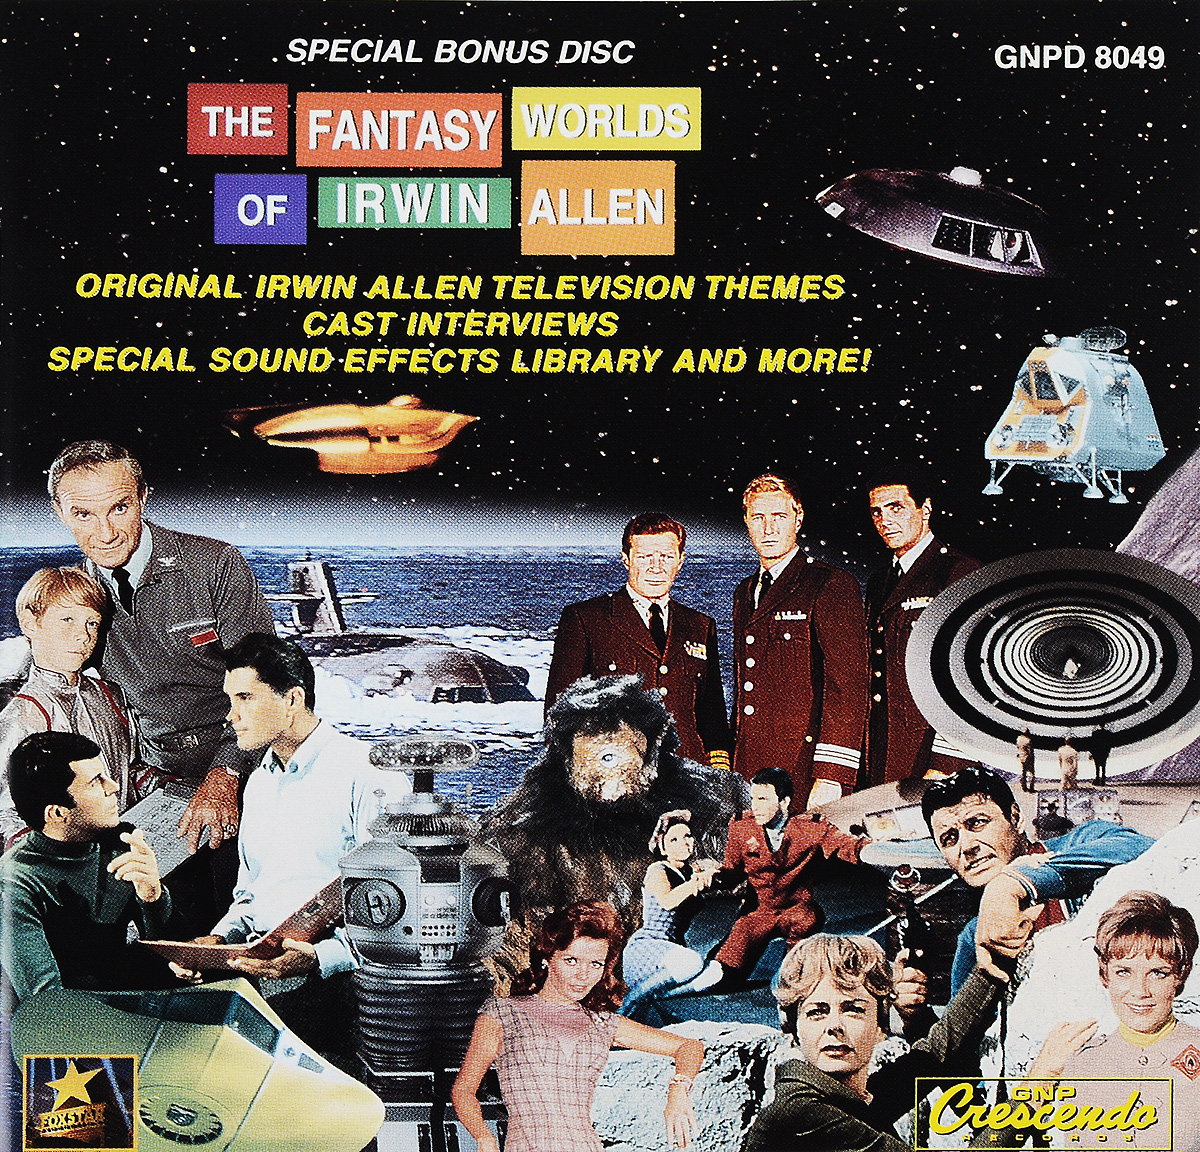 The Fantasy Worlds Of Irwin Allen. Bonus Disc цена